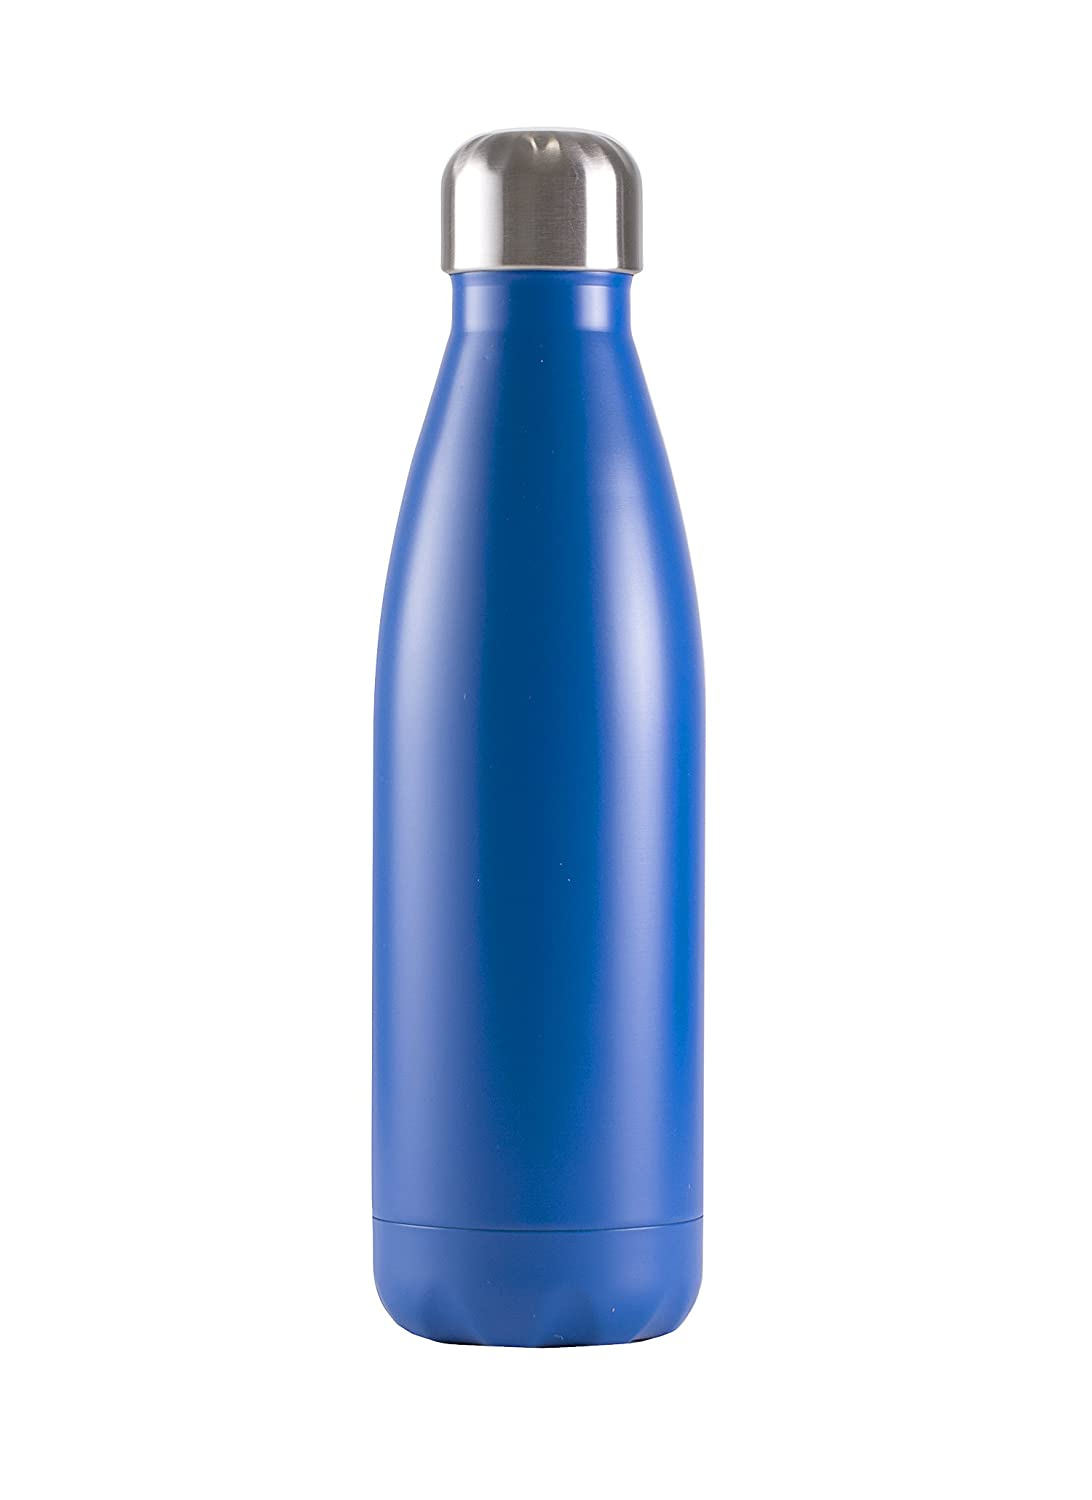 05bfe806412 Amazon.com   BonBon 17 Oz (500 ml) Vacuum Insulated Water Bottle ...